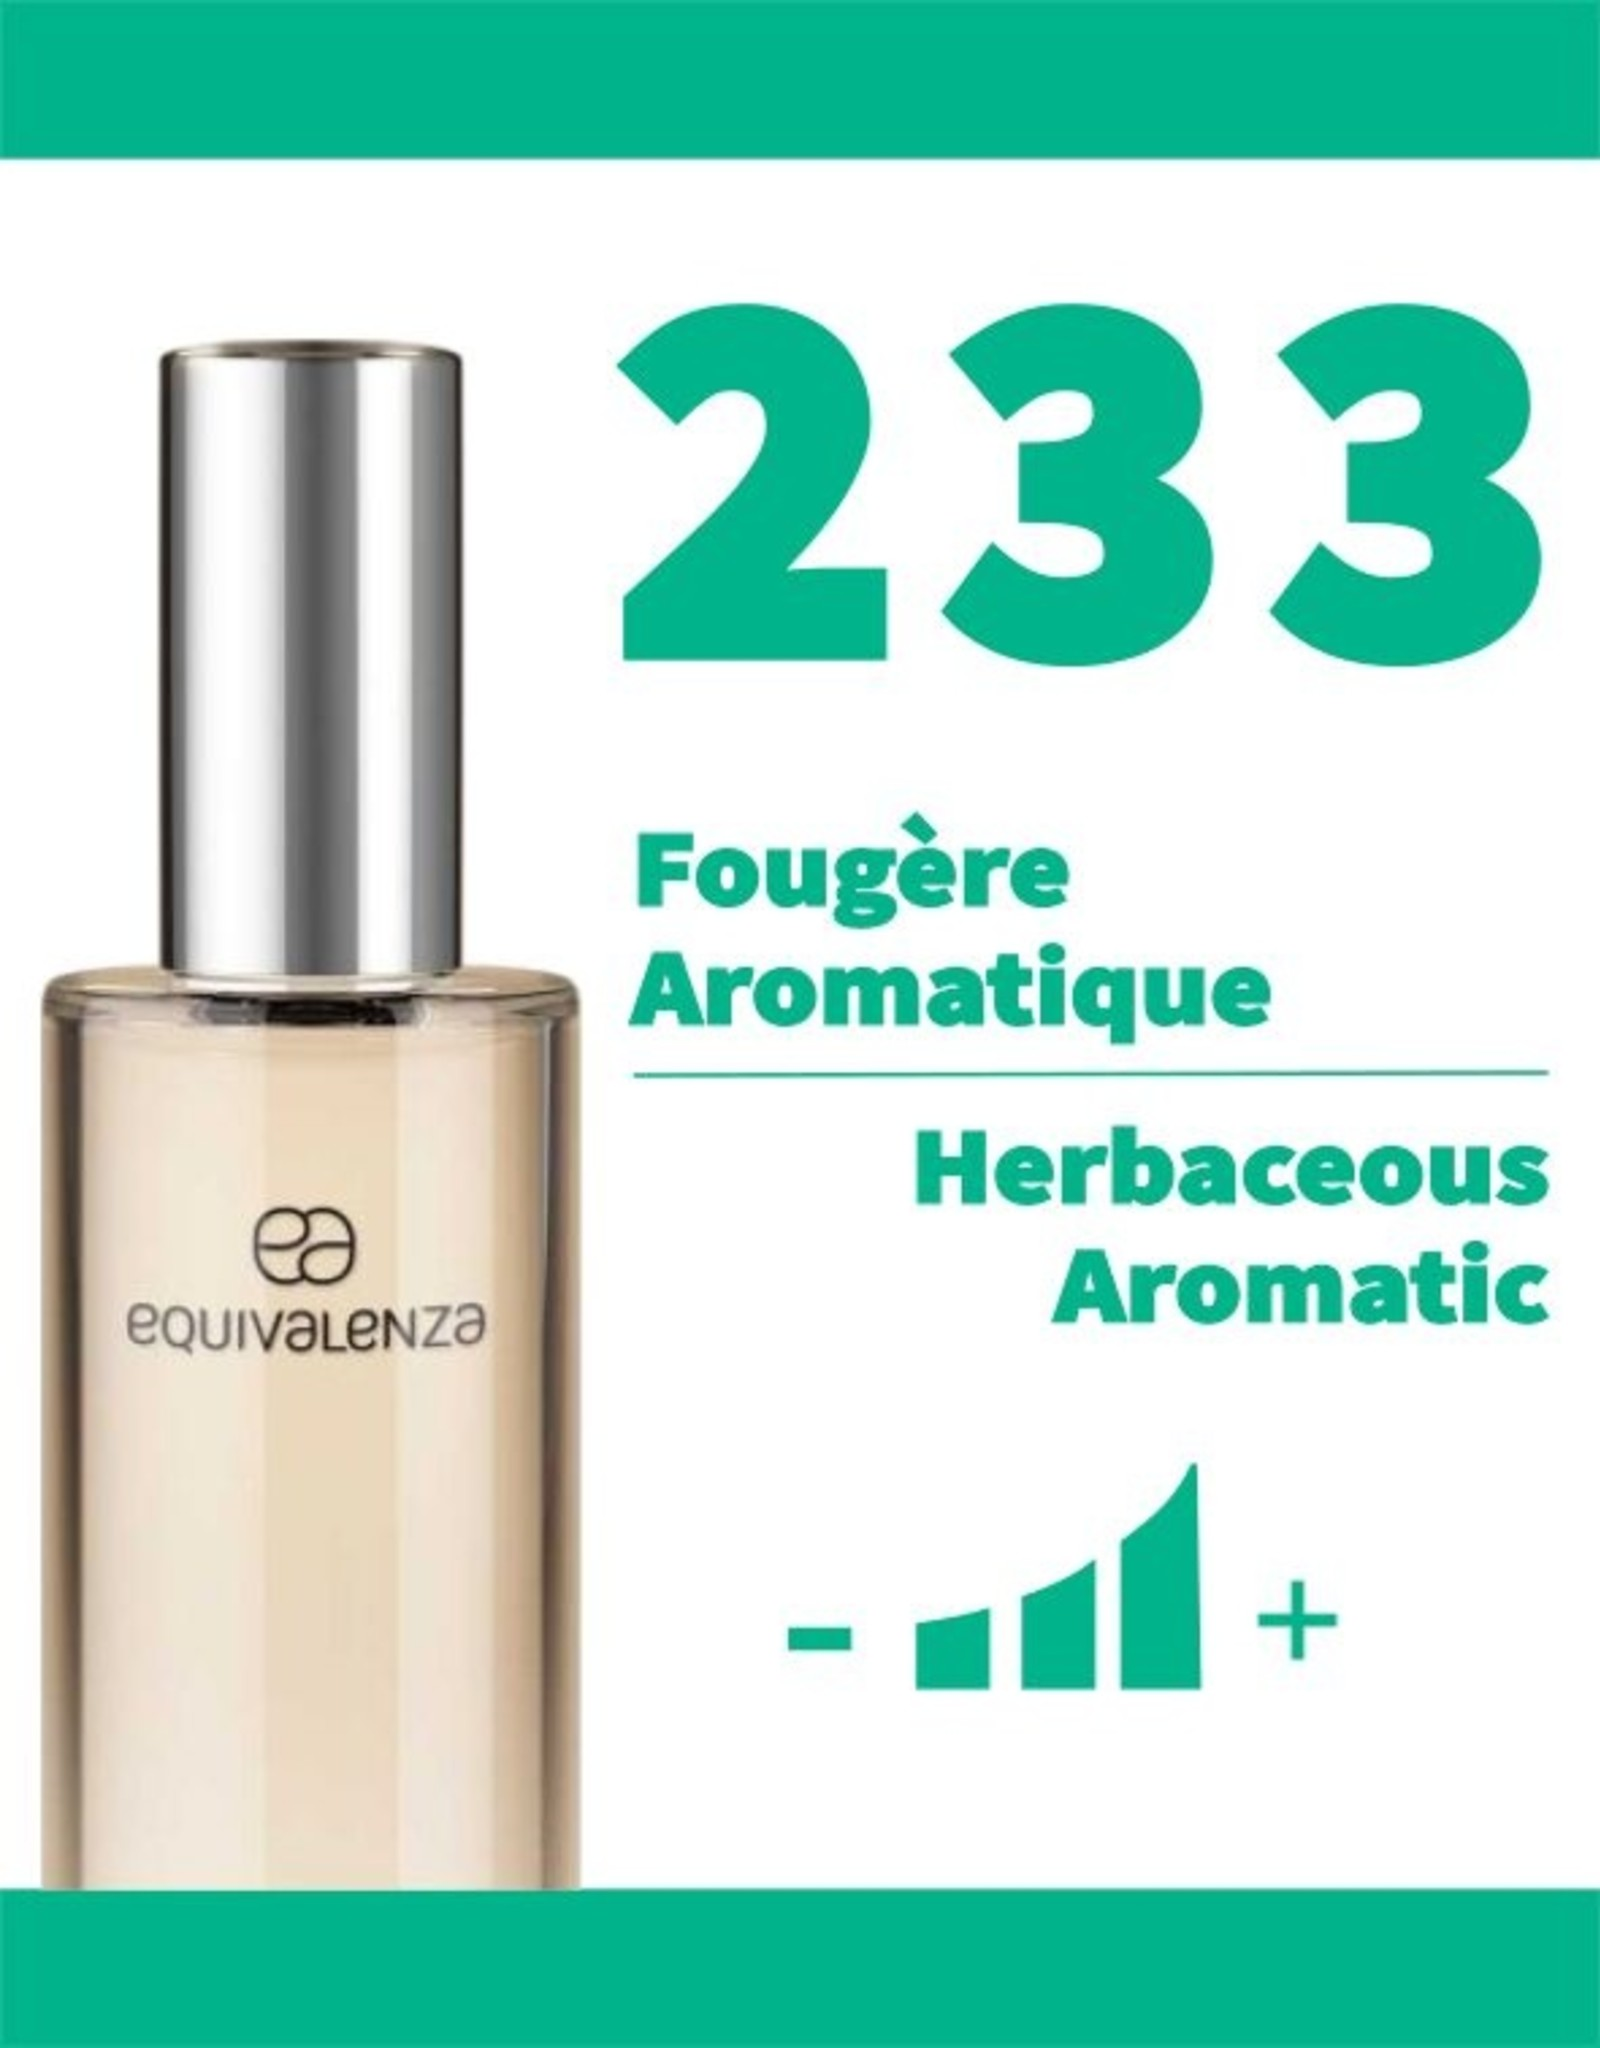 Equivalenza Herbaceous Aromatic 233